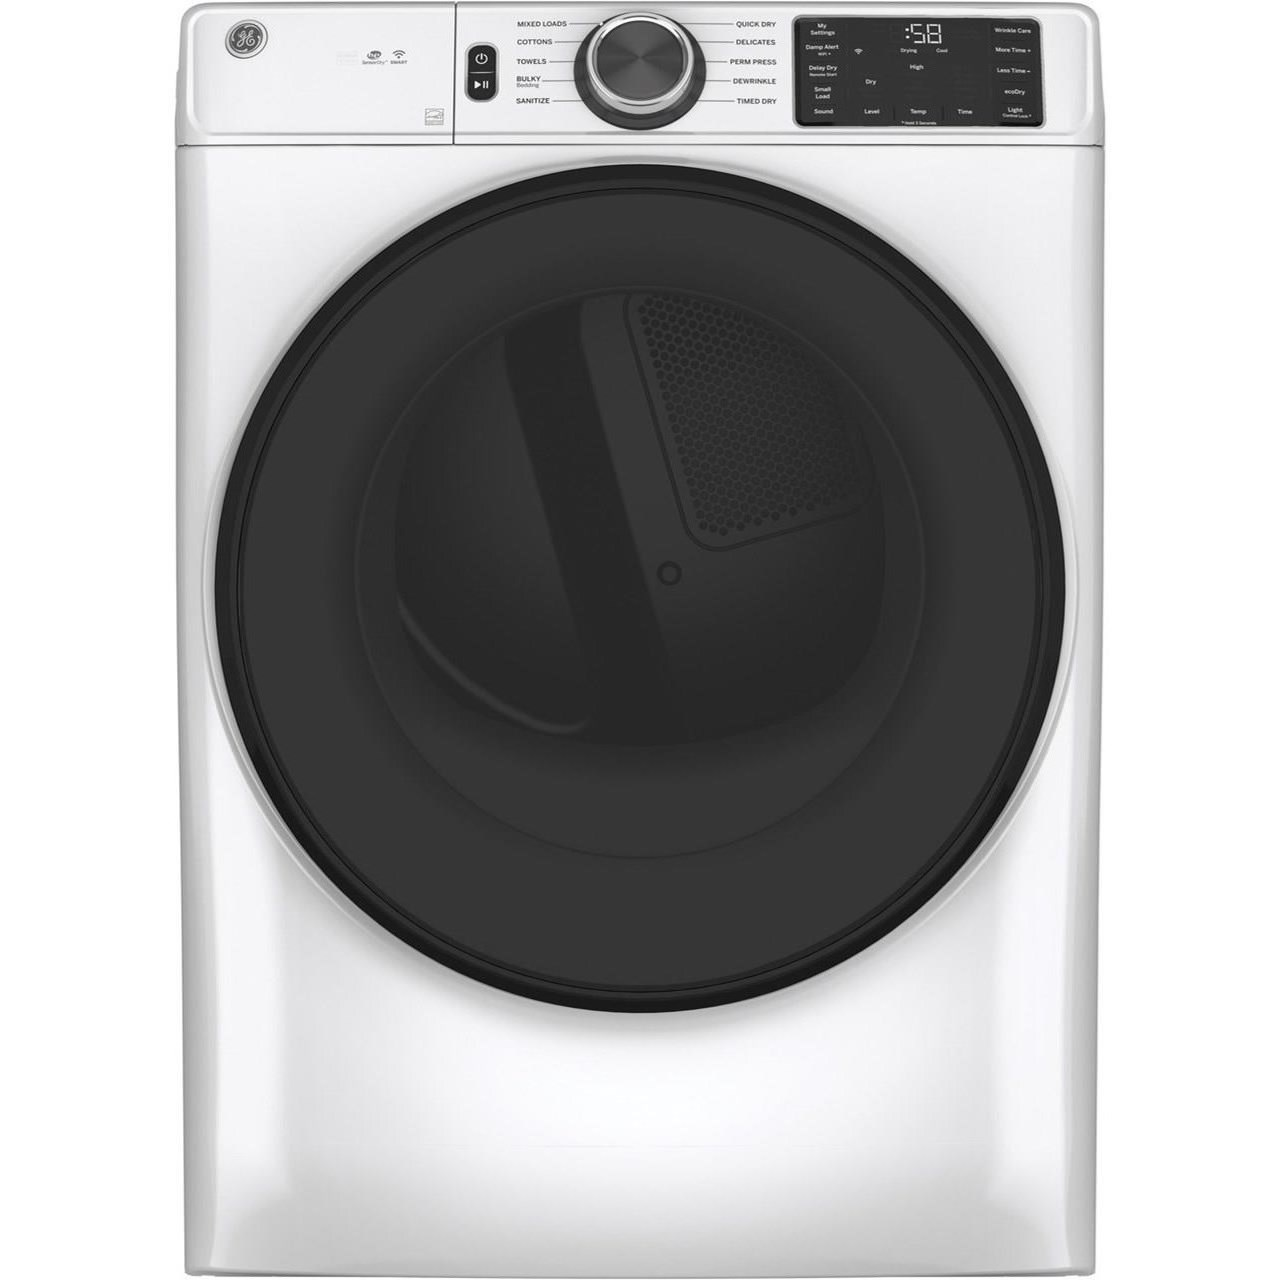 Home Laundry GE® Long Vent 7.8 cu. ft. Electric Dryer by GE Appliances at Furniture and ApplianceMart